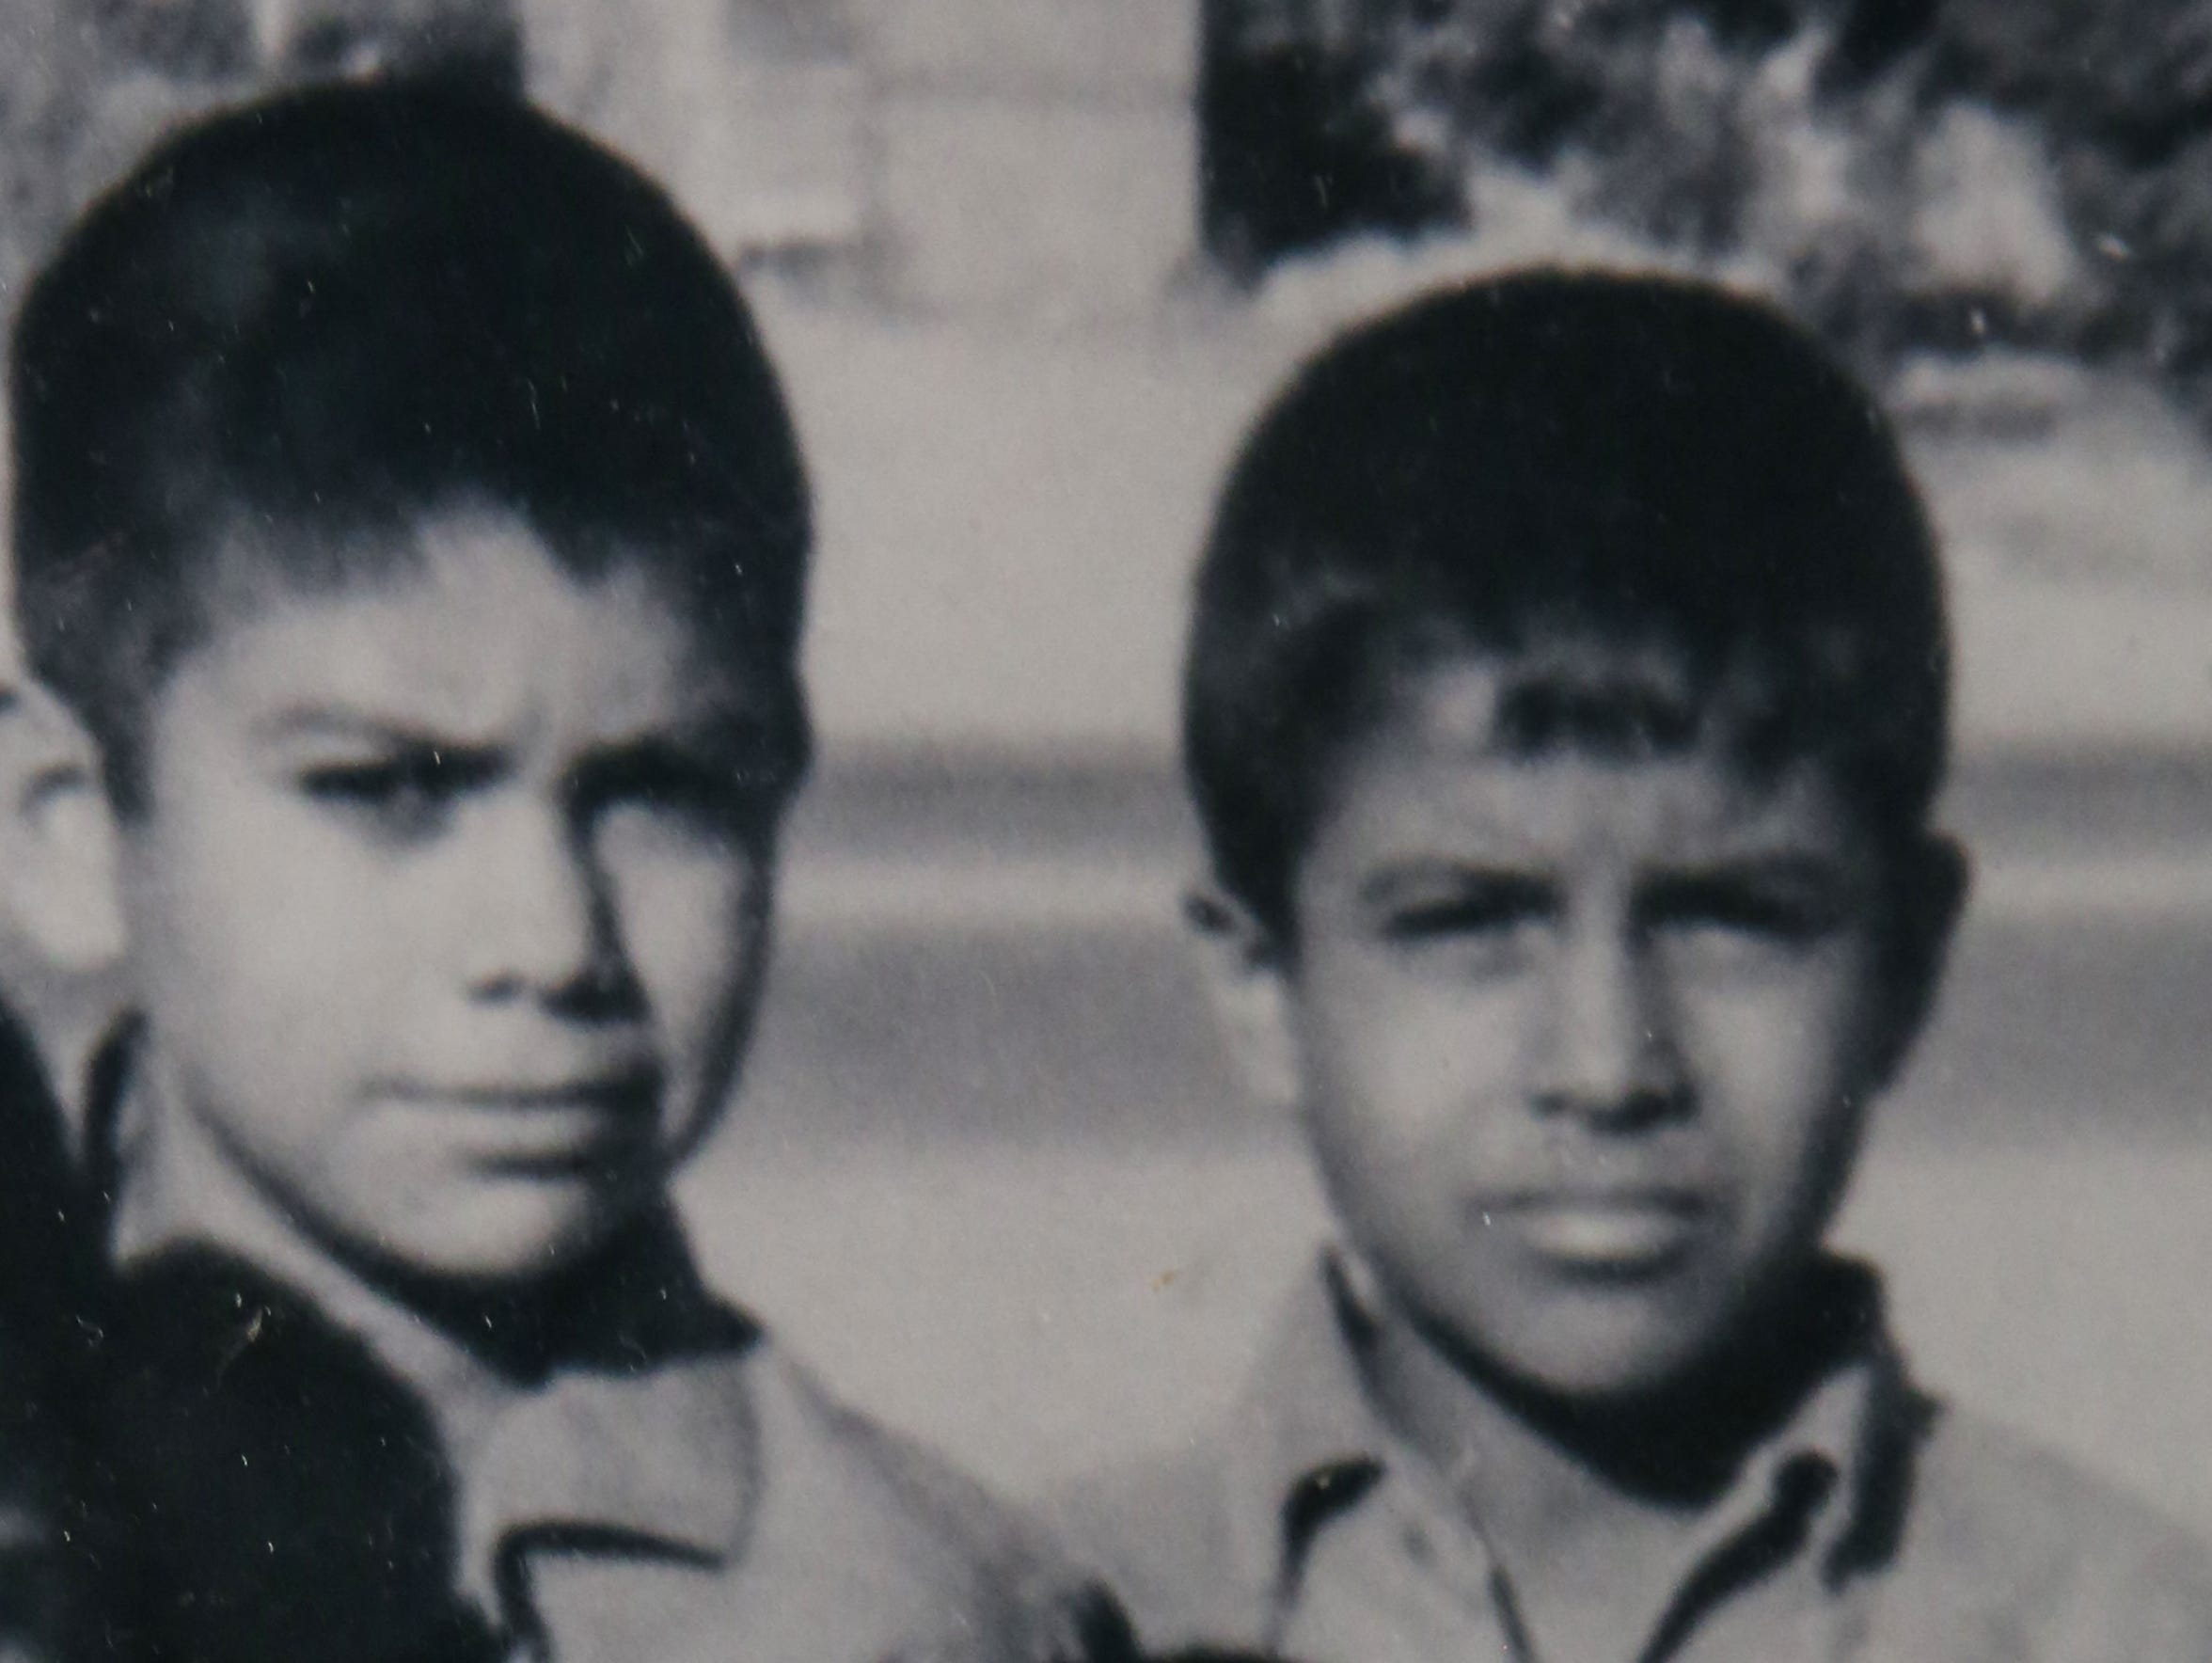 Brothers Jose, left, and Gil Vega.